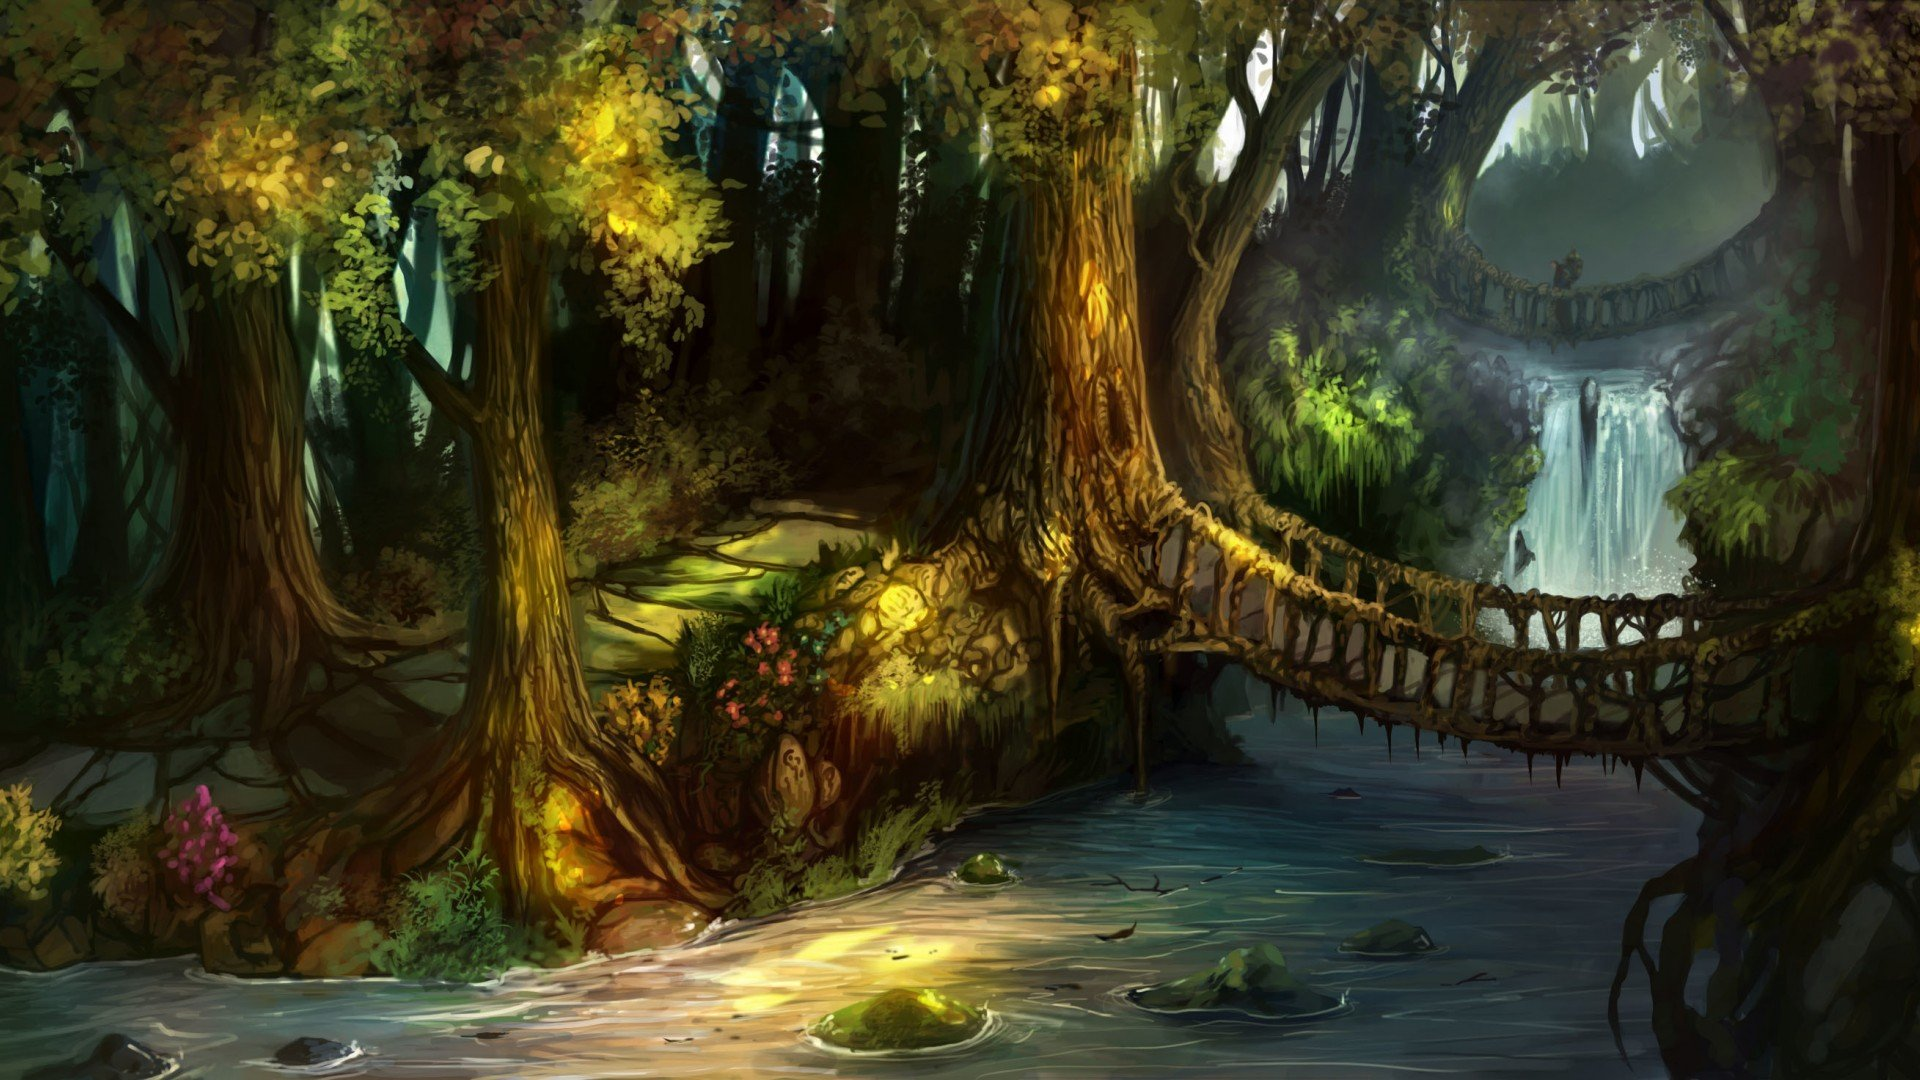 Swamp Wallpaper Swamp Shrek Background 1920x1080 Download Hd Wallpaper Wallpapertip